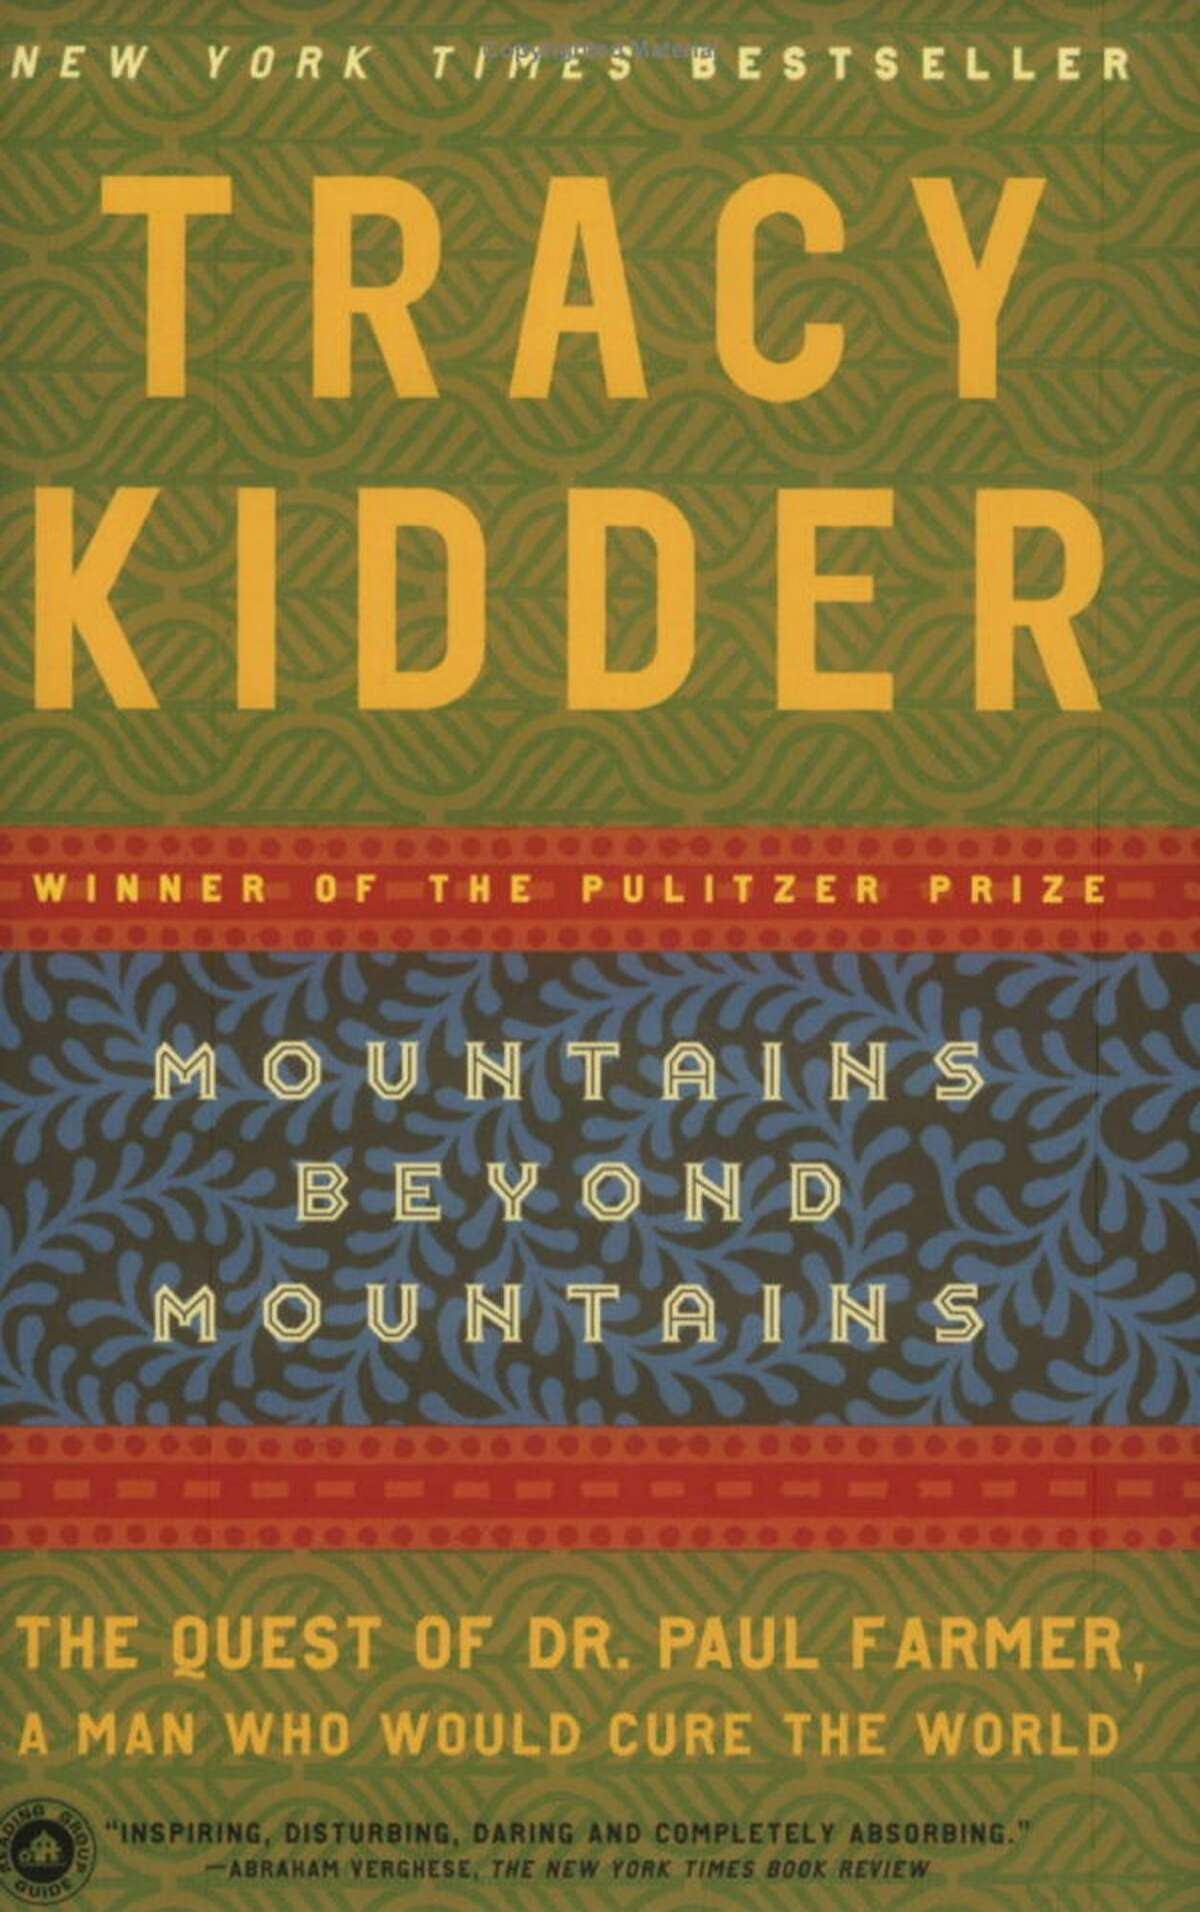 'Mountains Beyond Mountains: The Quest of Dr. Paul Farmer, a Man Who Would Cure the World' by Tracy Kidder (Paperback)